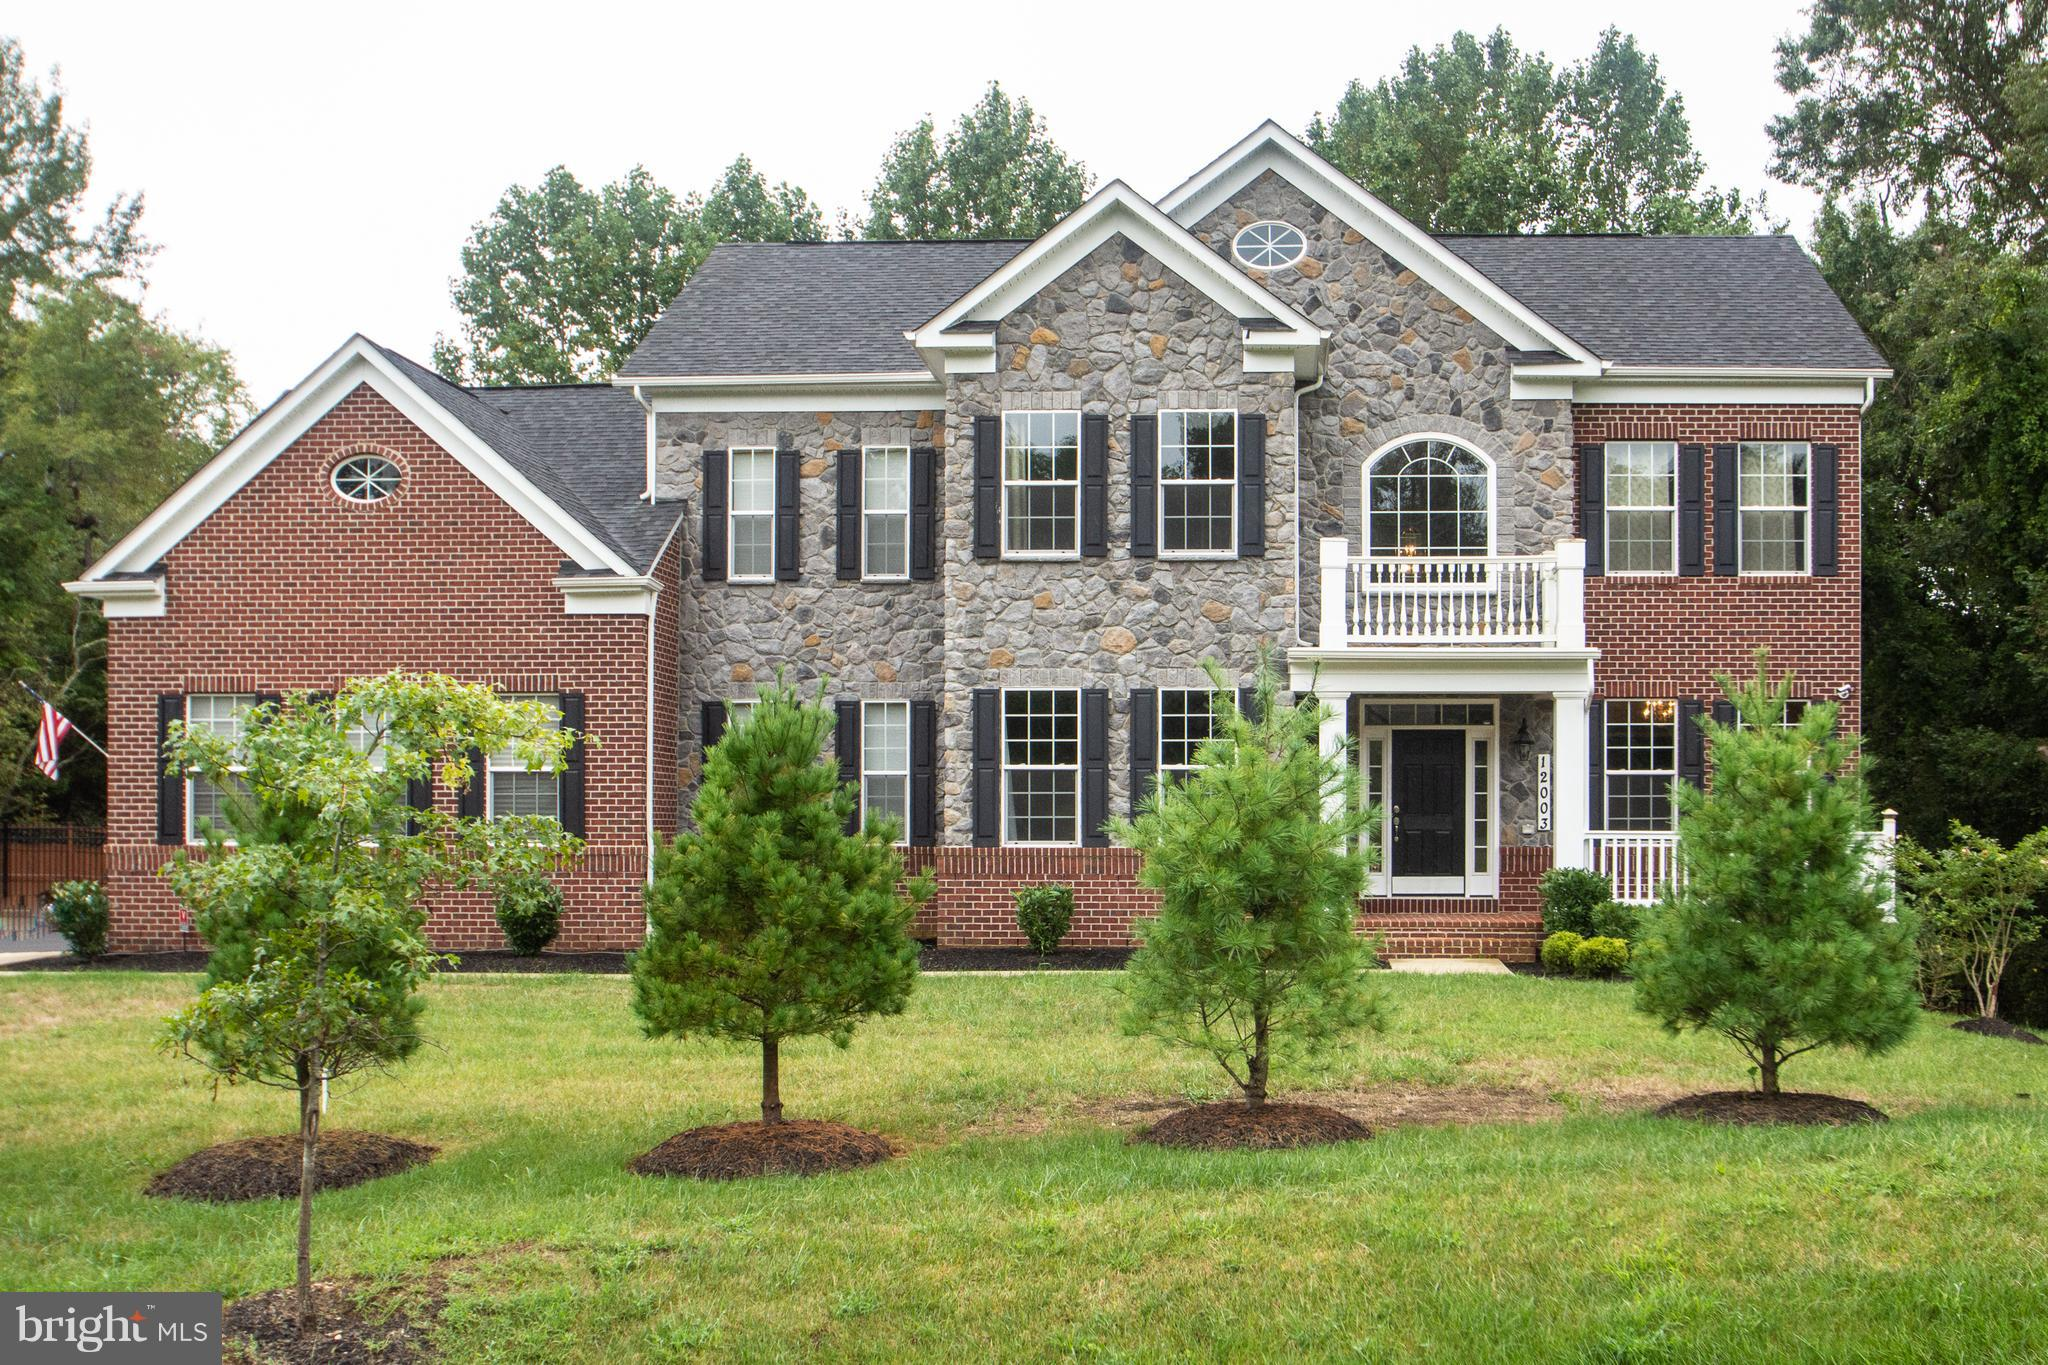 12003 WEATHERVANE LANE, UPPER MARLBORO, MD 20772